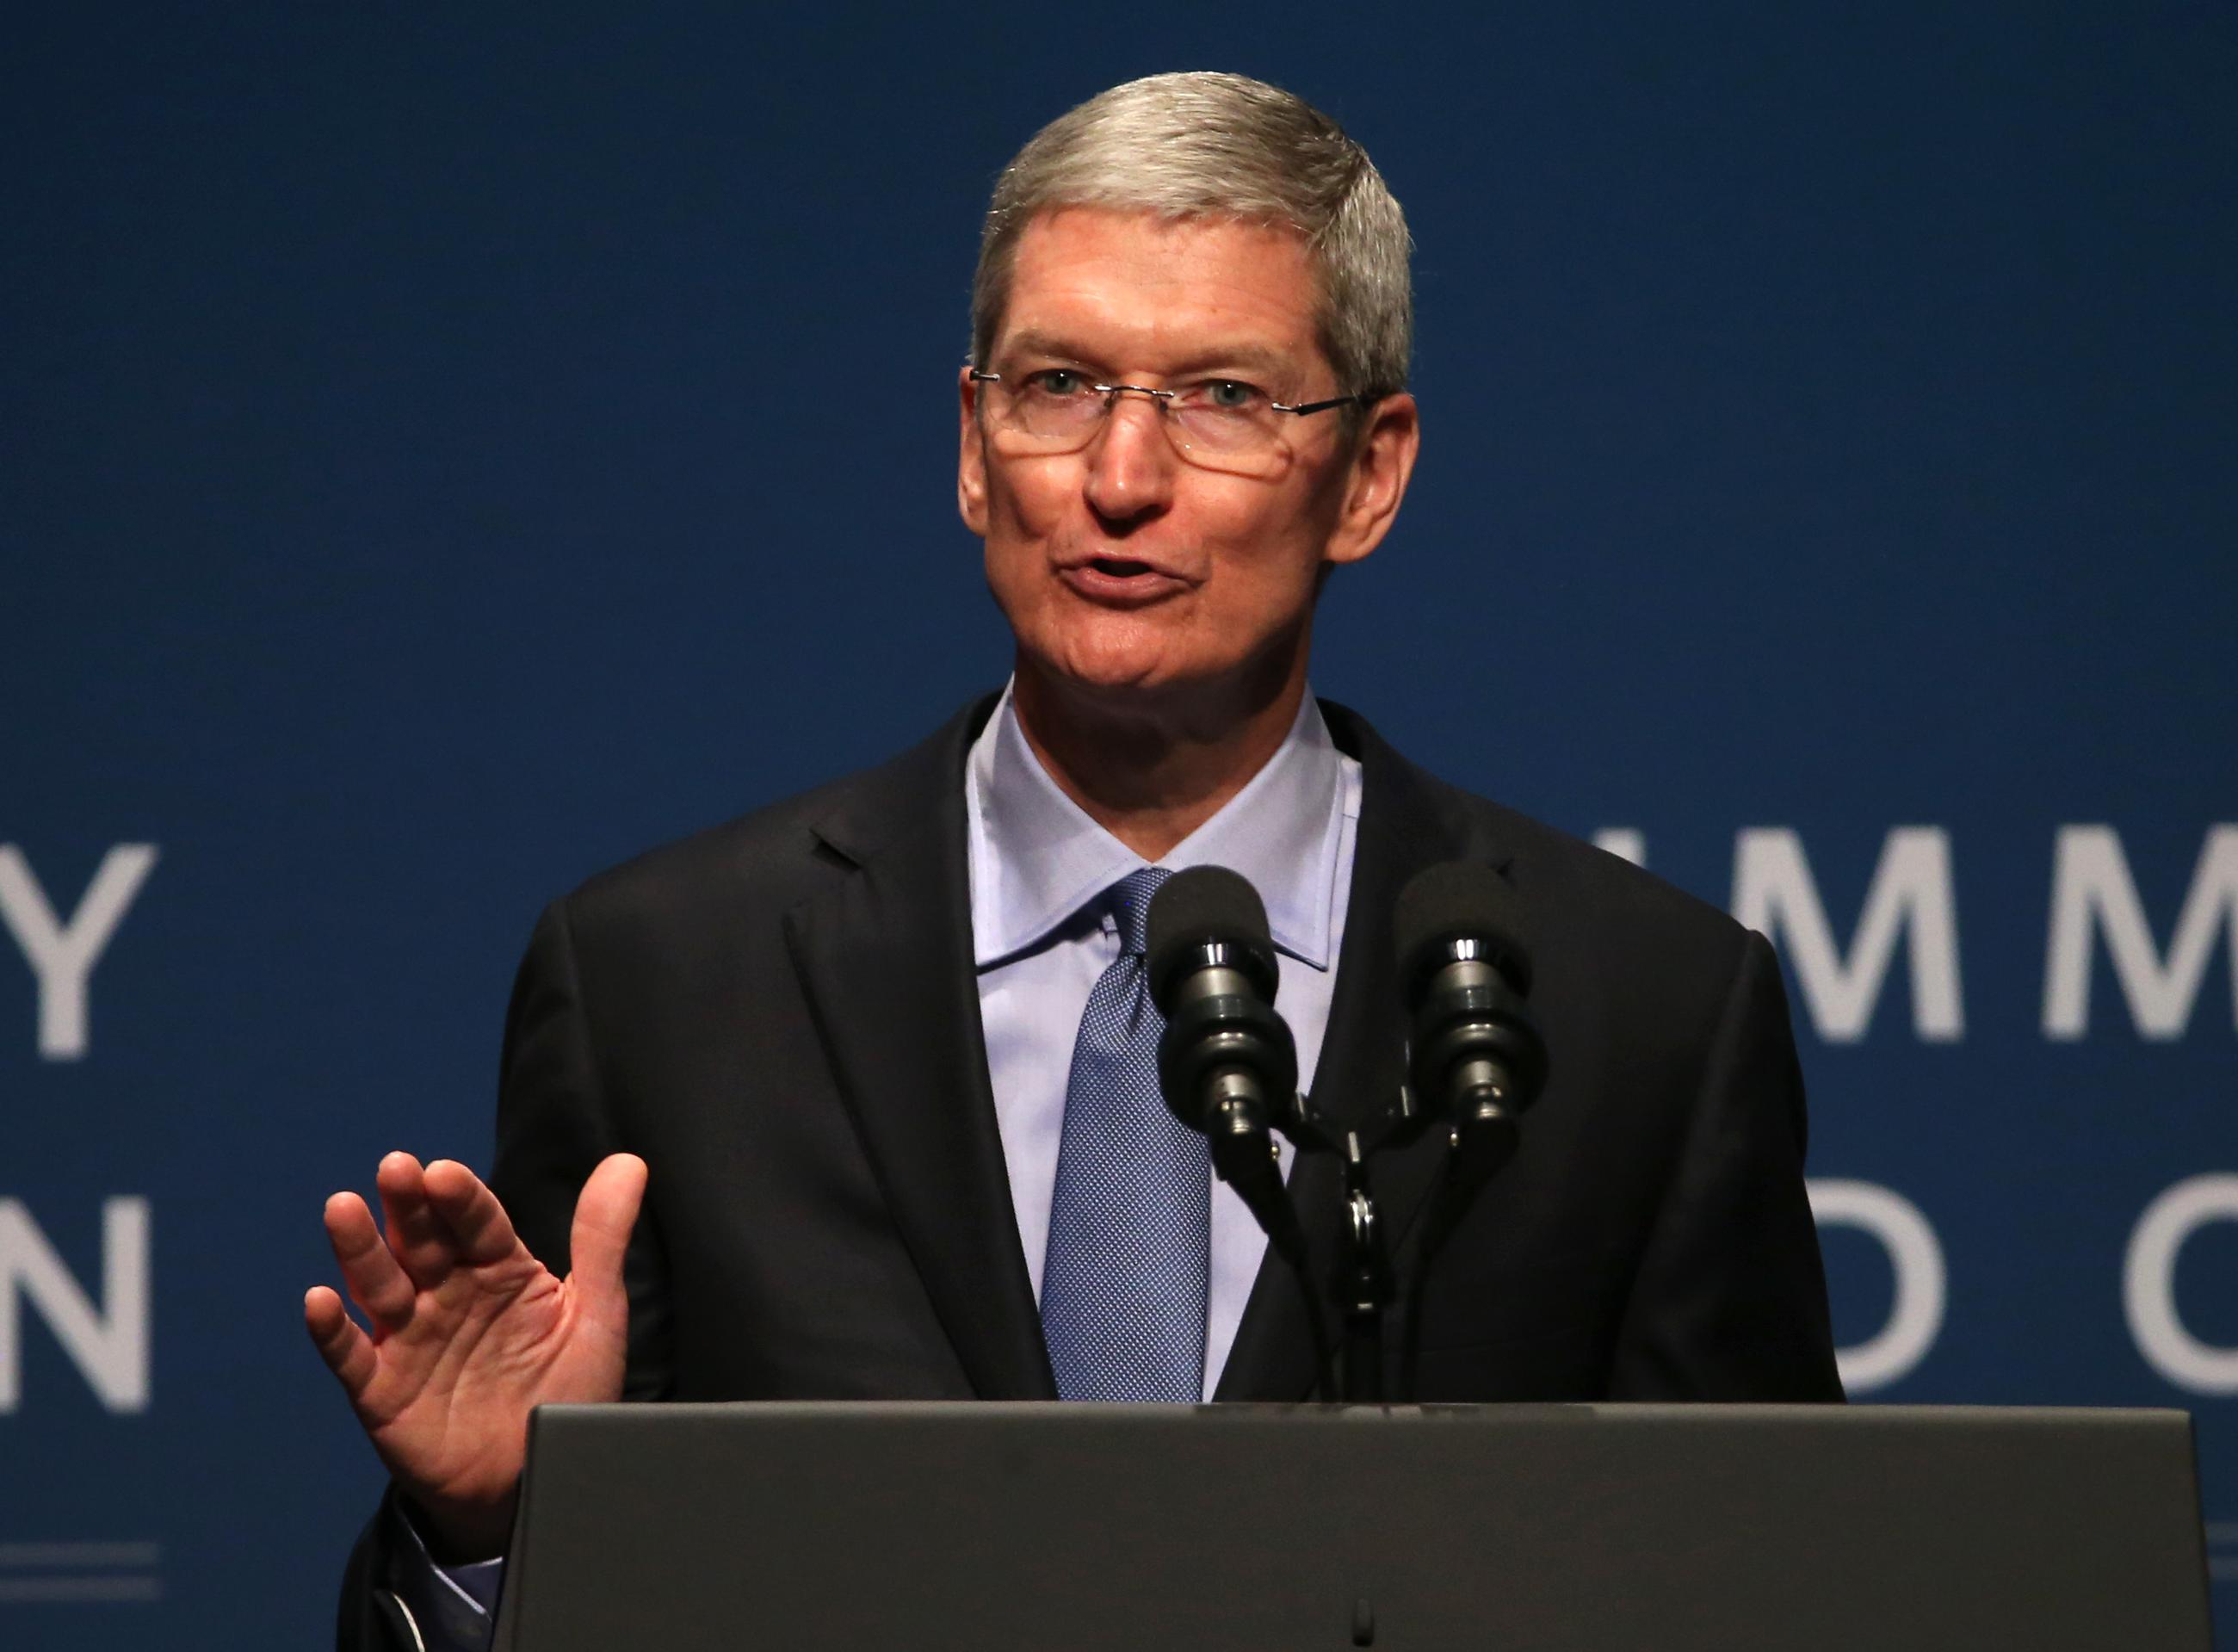 Apple CEO Declares Digital Privacy a Human Right